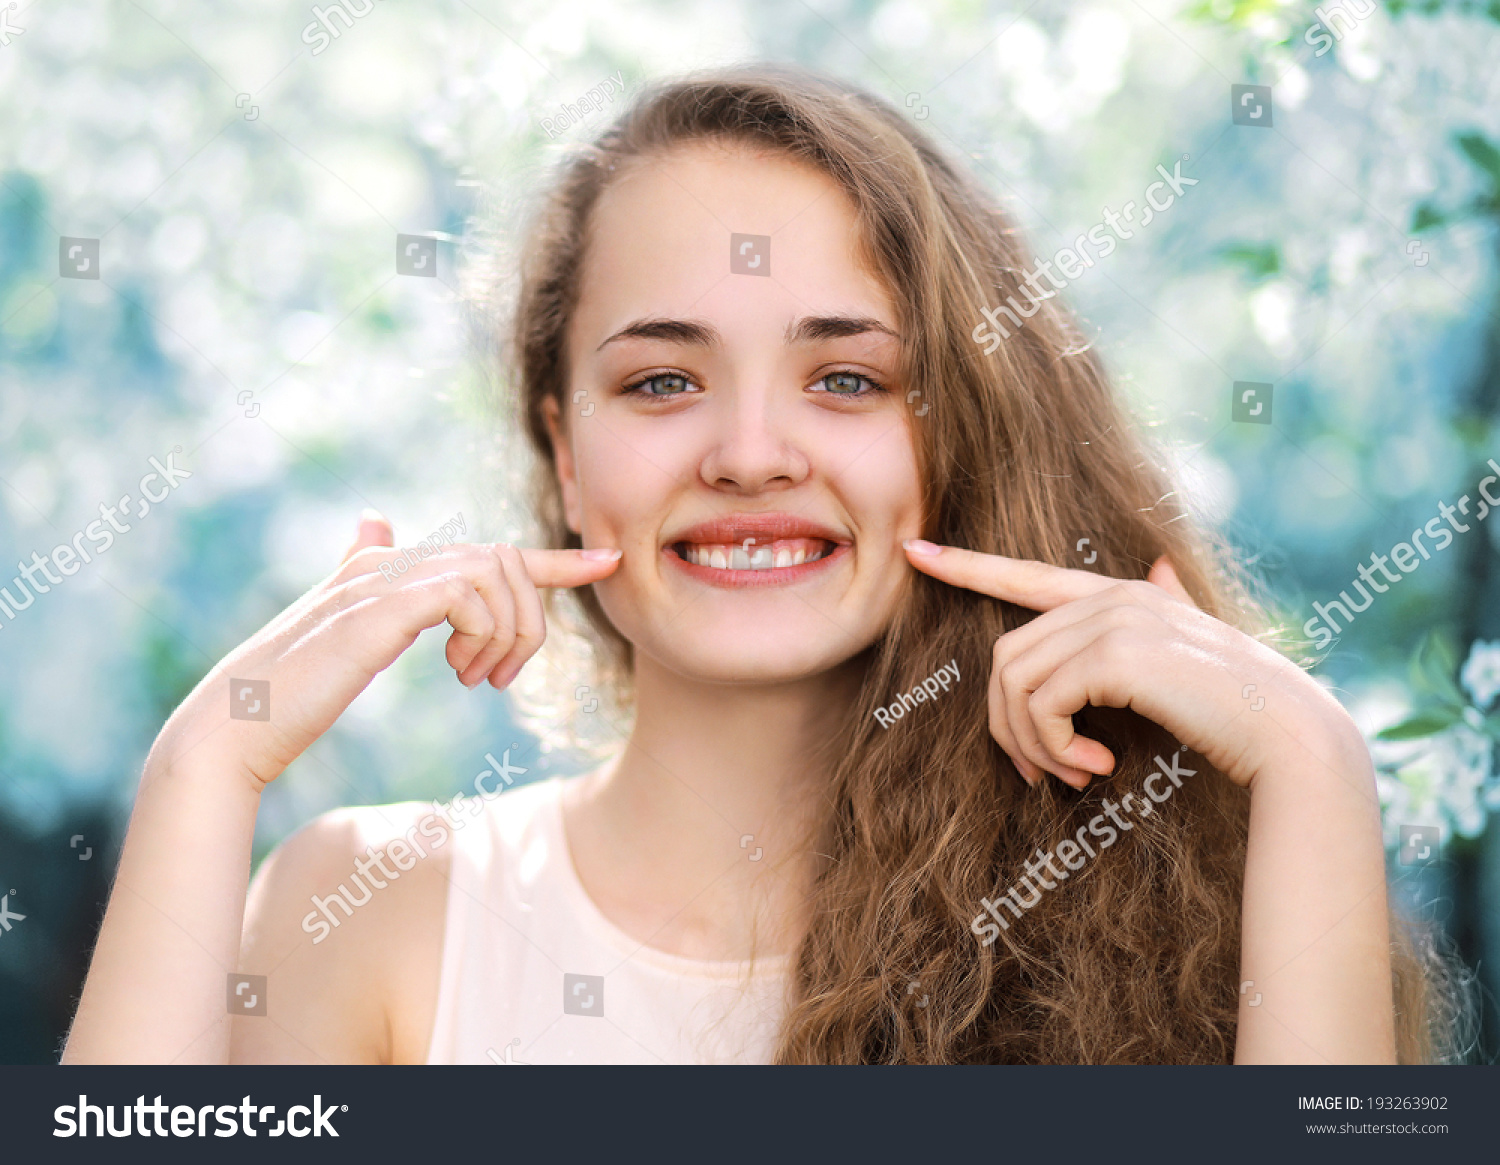 Young charming funny girl cute smiling with dimpled in warm spring day fun positive concept - Charming teenage girls image ...